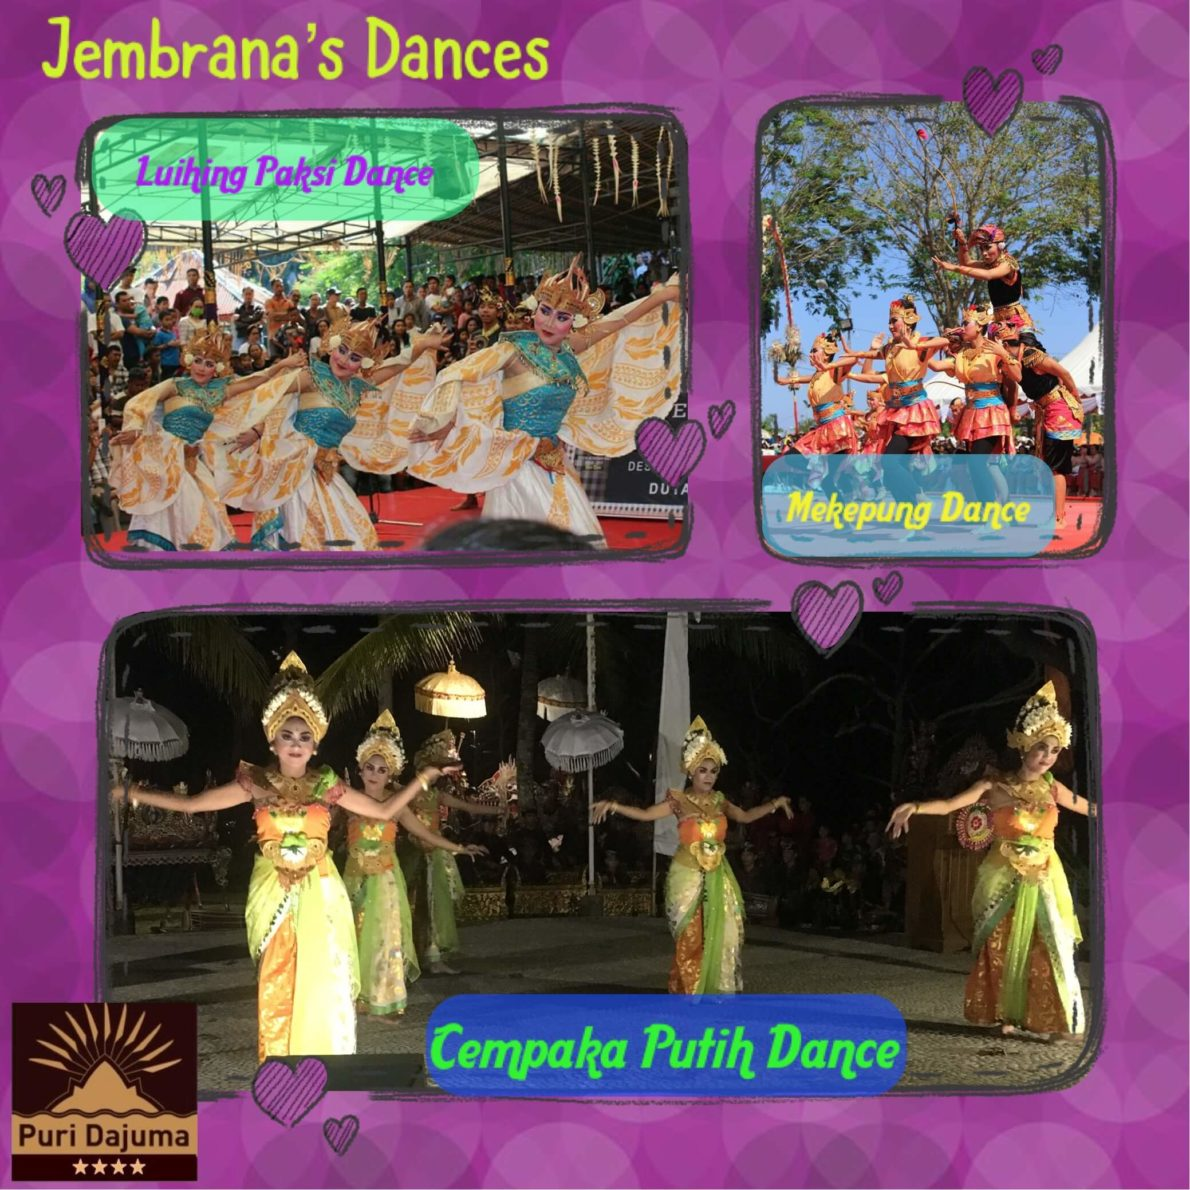 ORIGINAL DANCES FROM WEST BALI: A MUST! Puri Dajuma, Beach Eco-Resort & Spa, West Bali